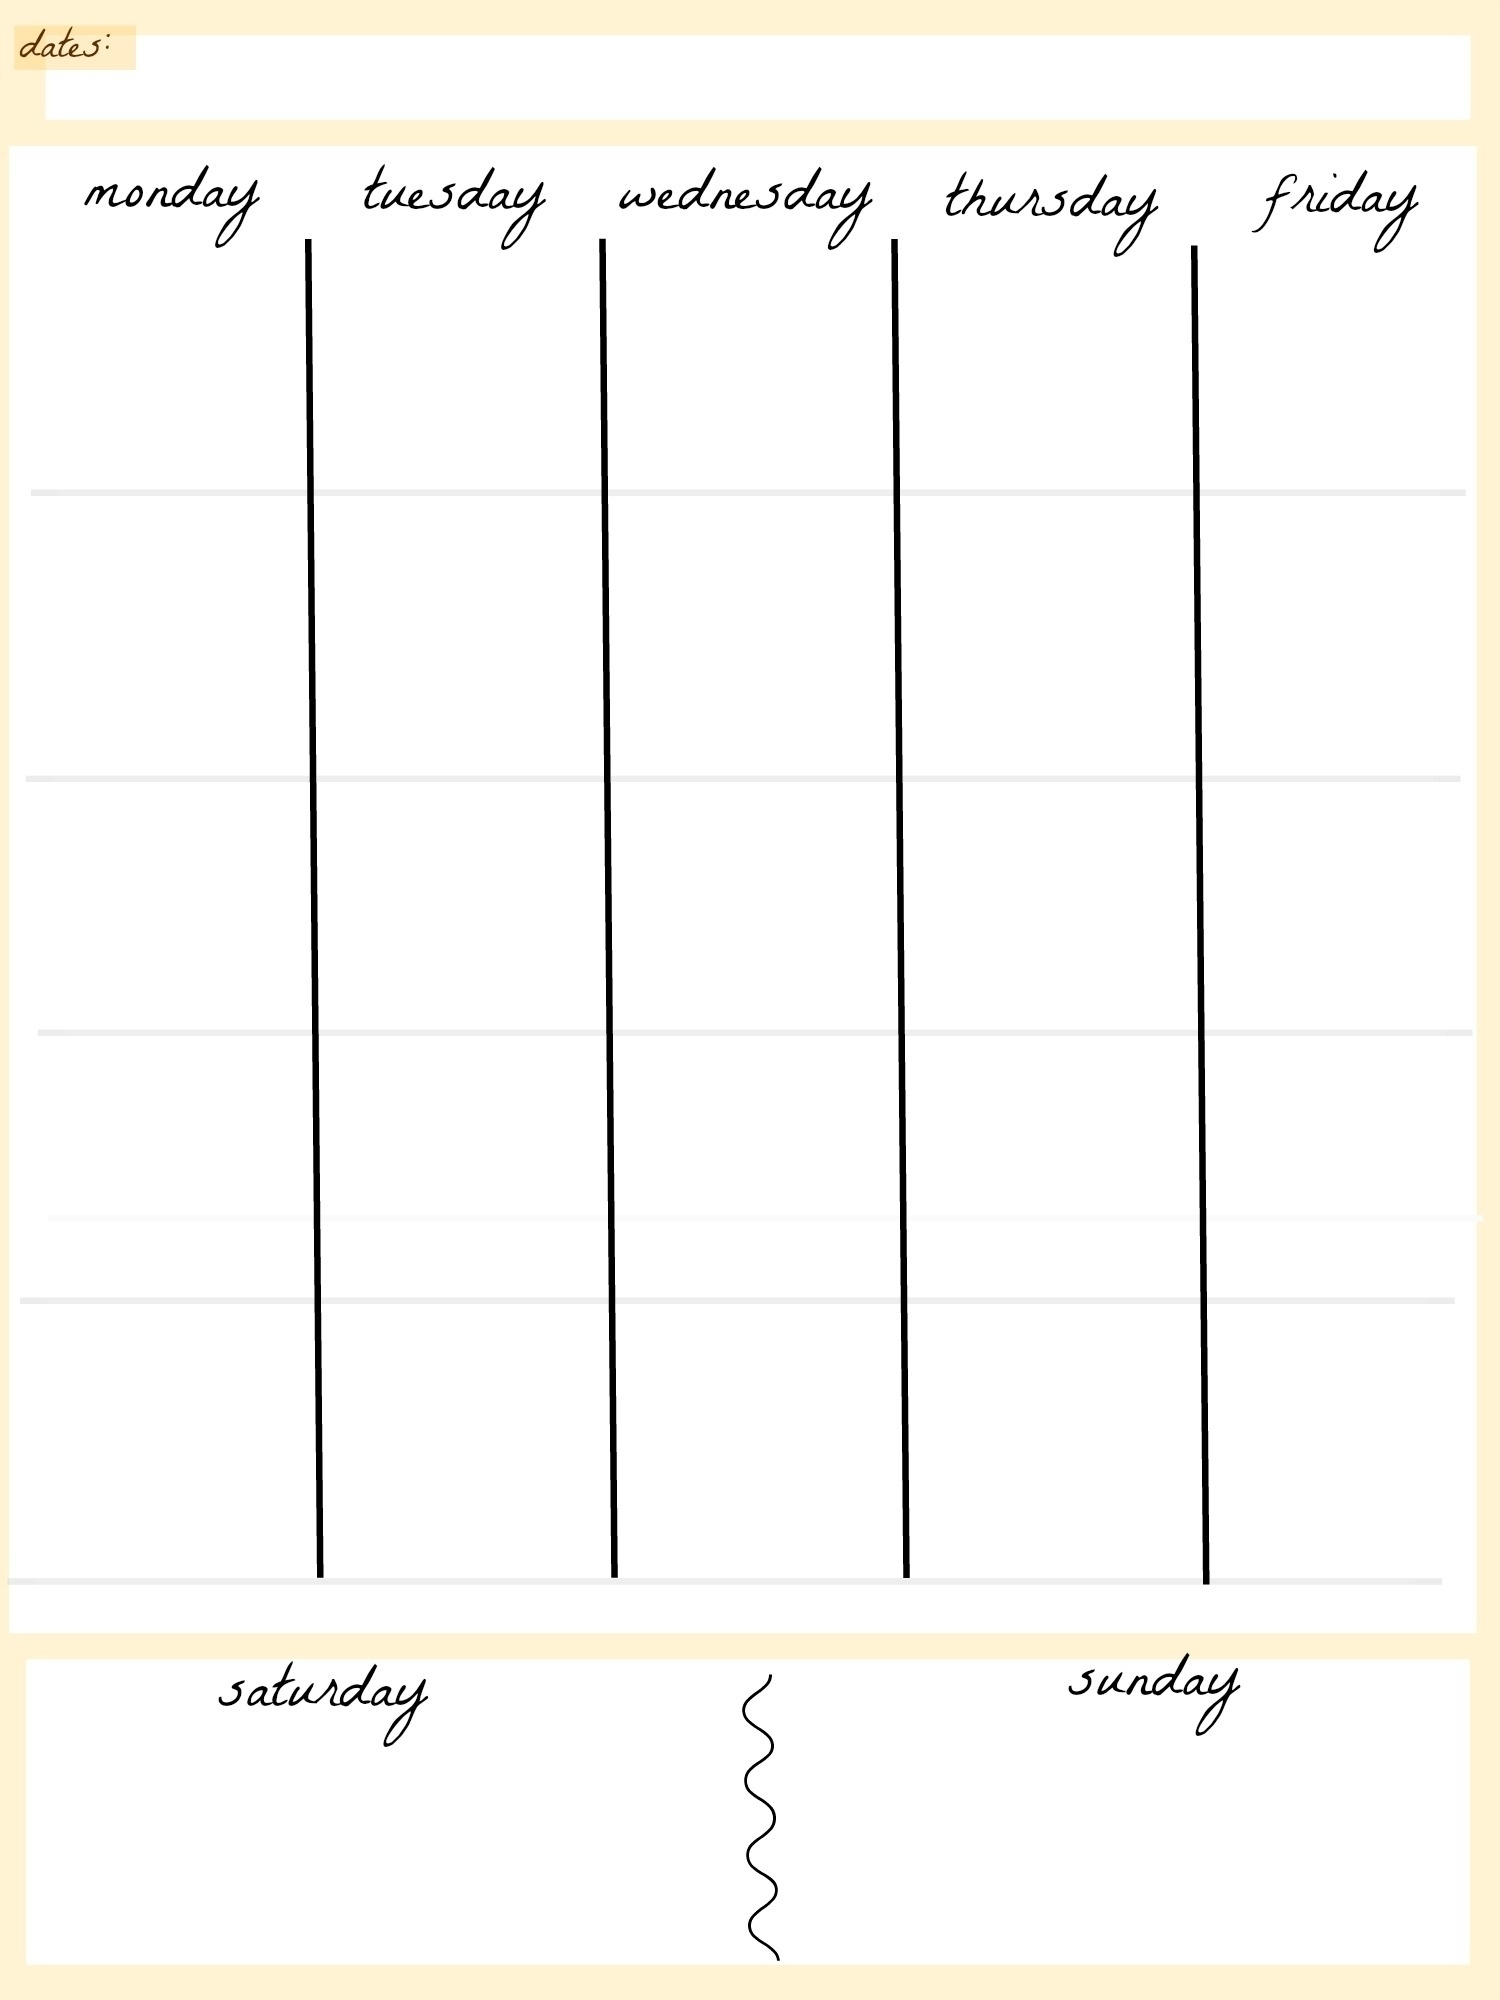 5 Day Monthly Calendar Printable | Template Calendar Printable in 5 Day Monthly Calendar Printable